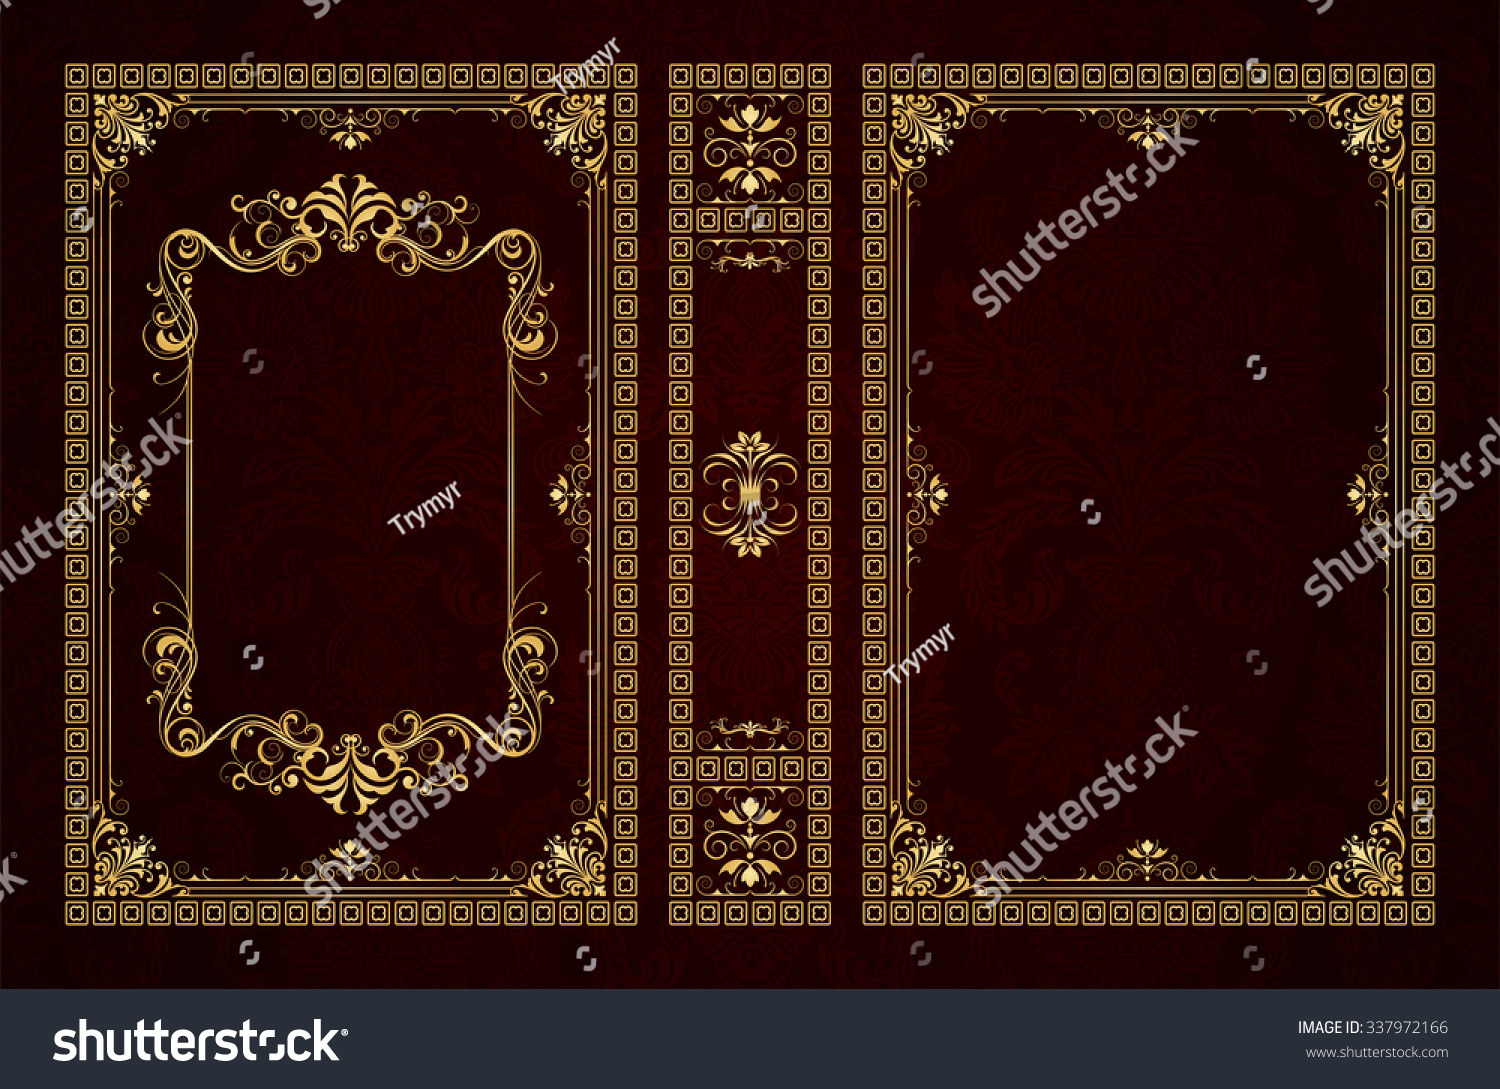 Old Book Cover Vector : Vector classical book cover decorative vintage stock